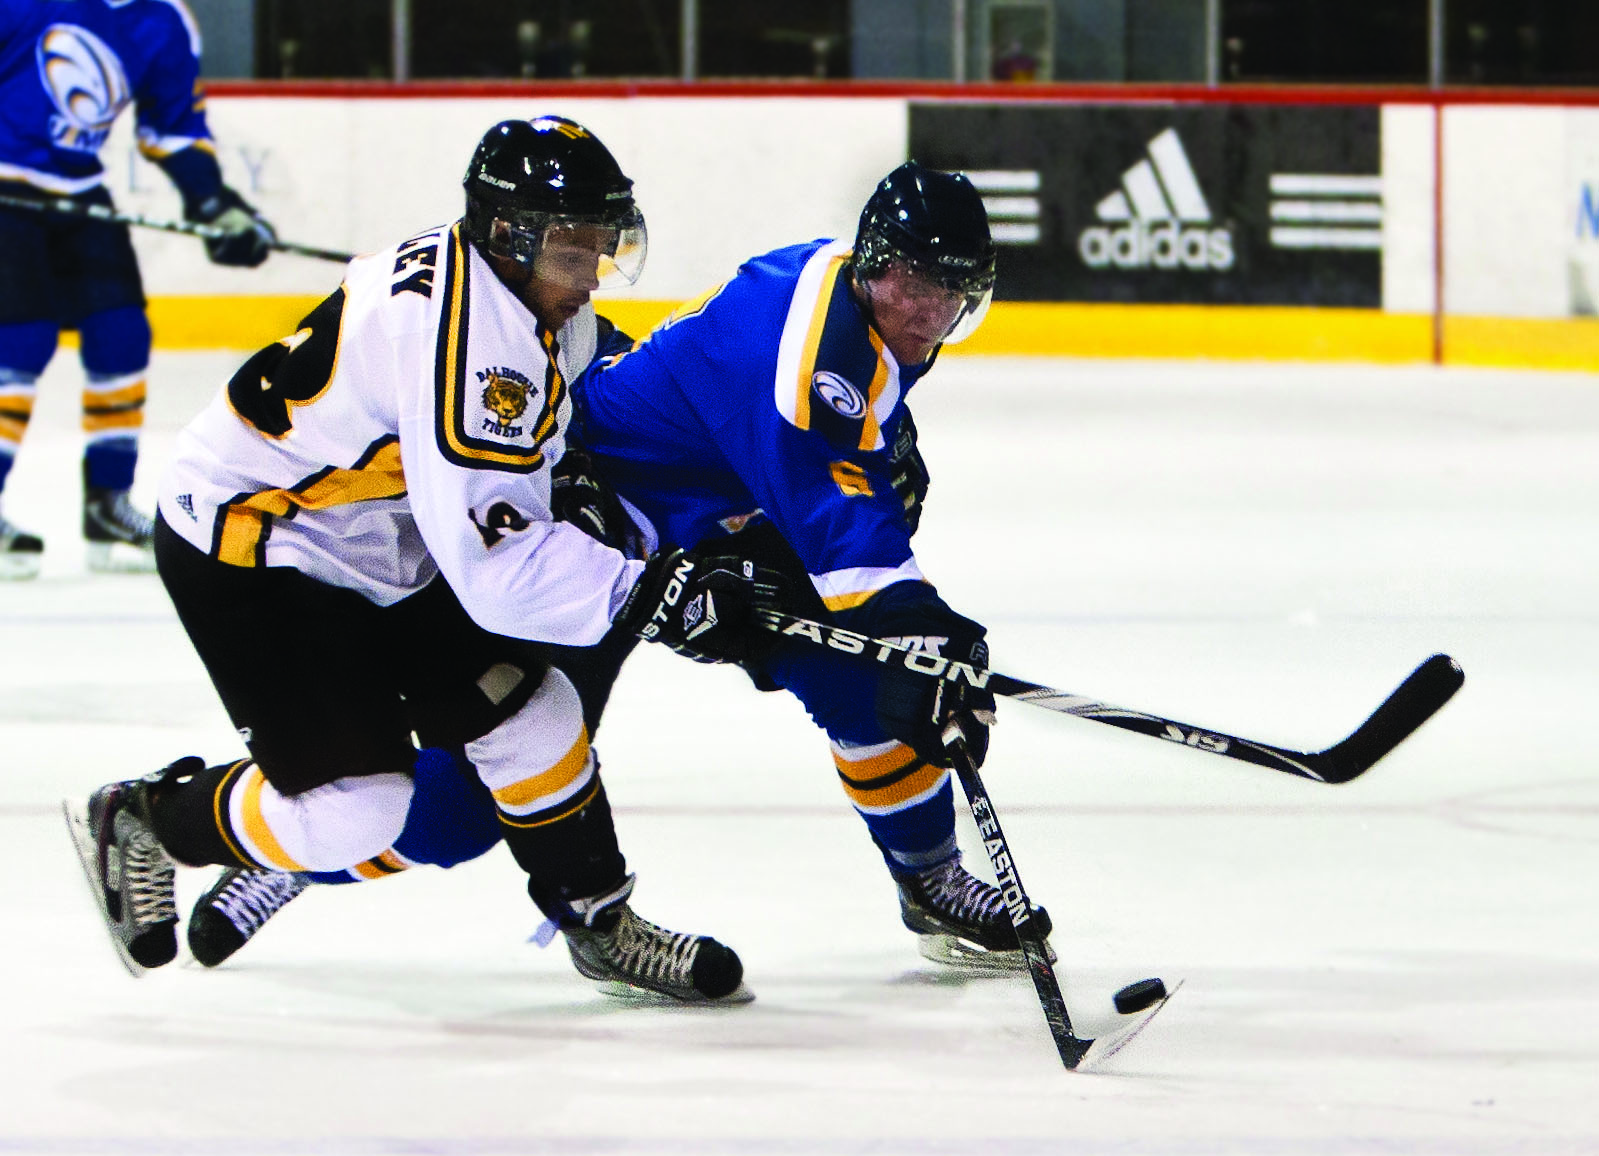 Men's hockey lose out. Photo by Martina Marien.